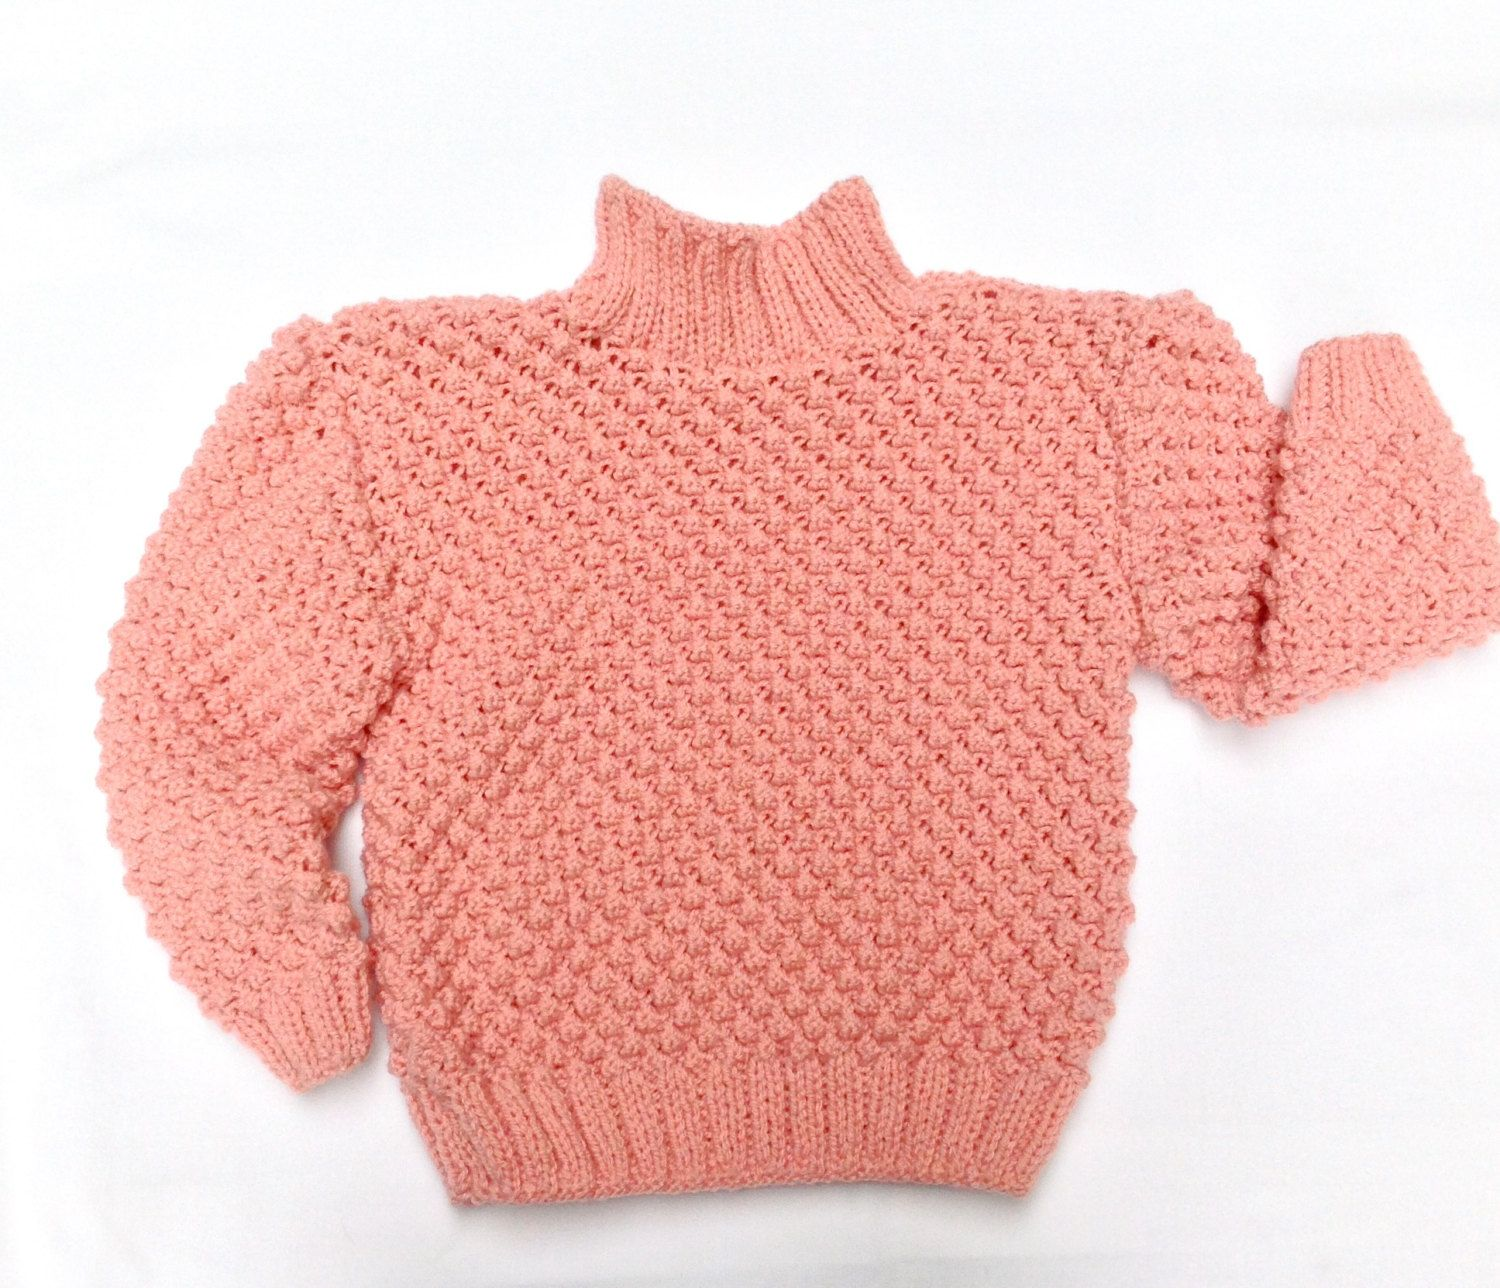 Knit sweater, toddler sweater, pink cardigan, knitted pullover ...